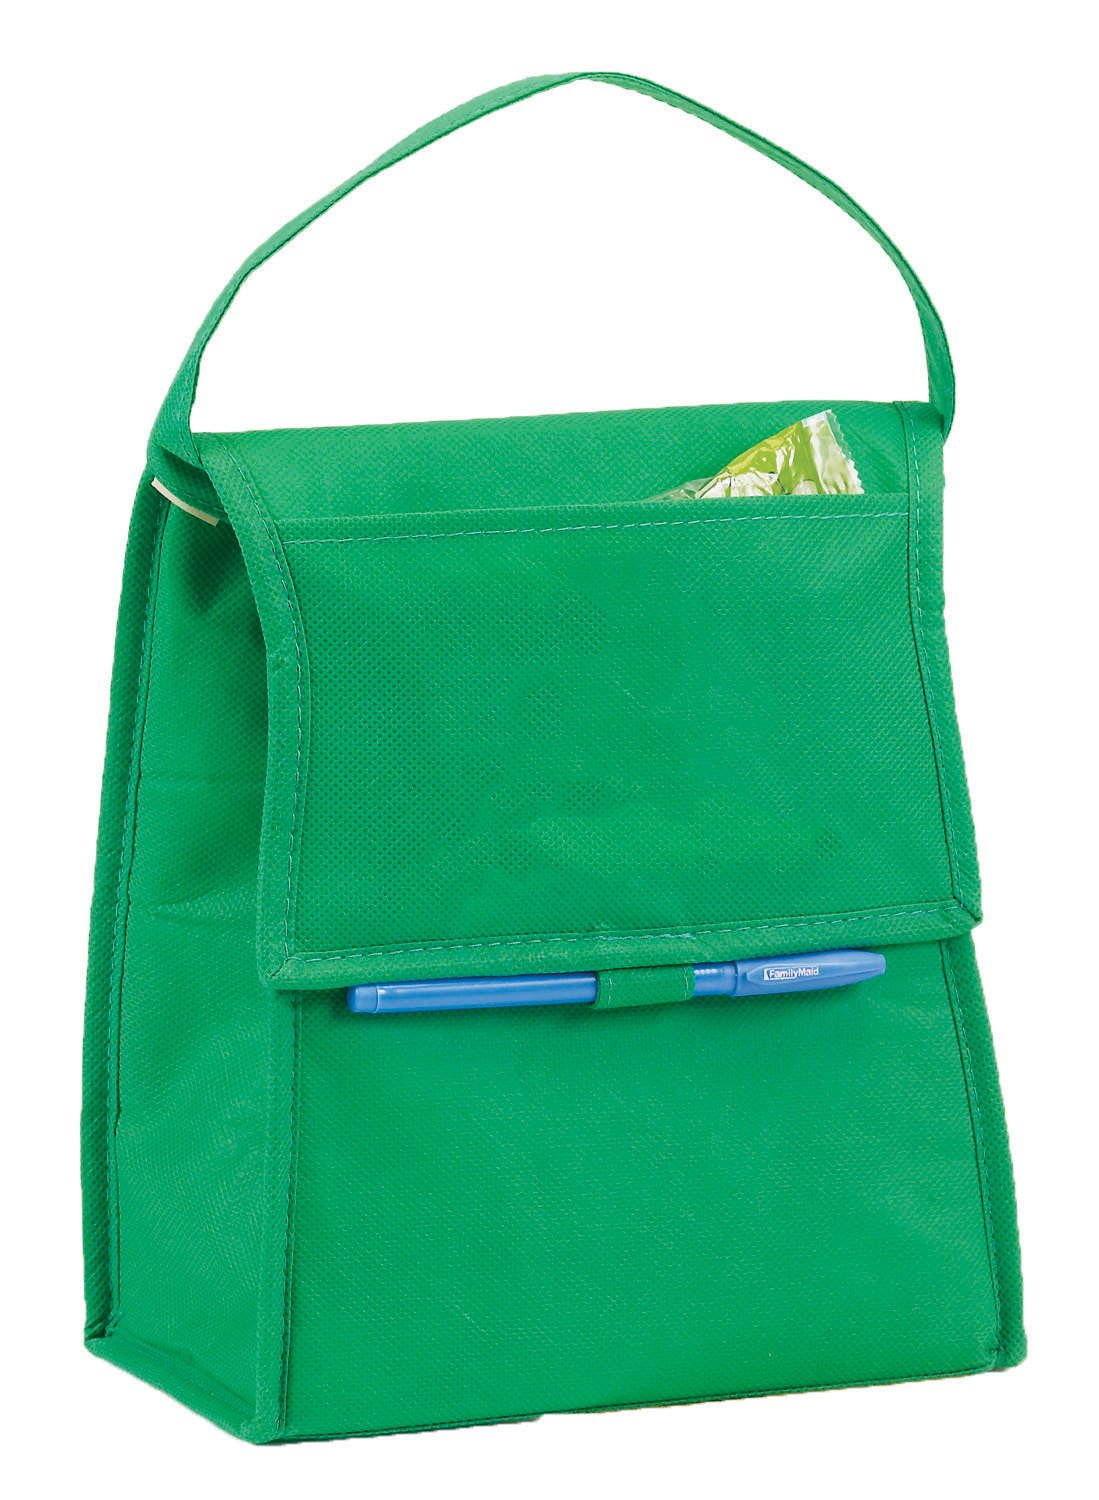 Eunichara Cooler Lunch Bag Foldable With Thermal Insulated Lining Reusable Warmer